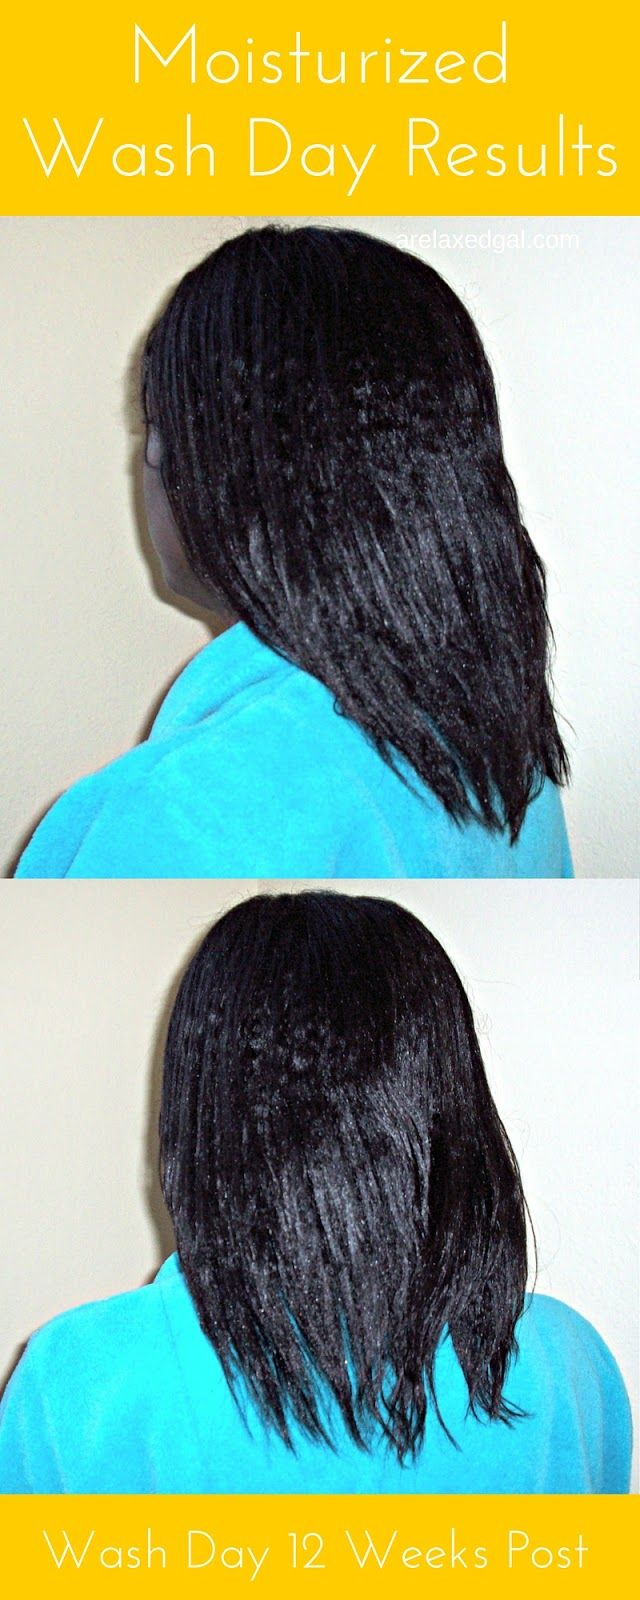 Wash Day 12 Weeks Post 11 11 Relaxer Touch Up Relaxed Hair Care Hair Maintenance Straight Black Hair